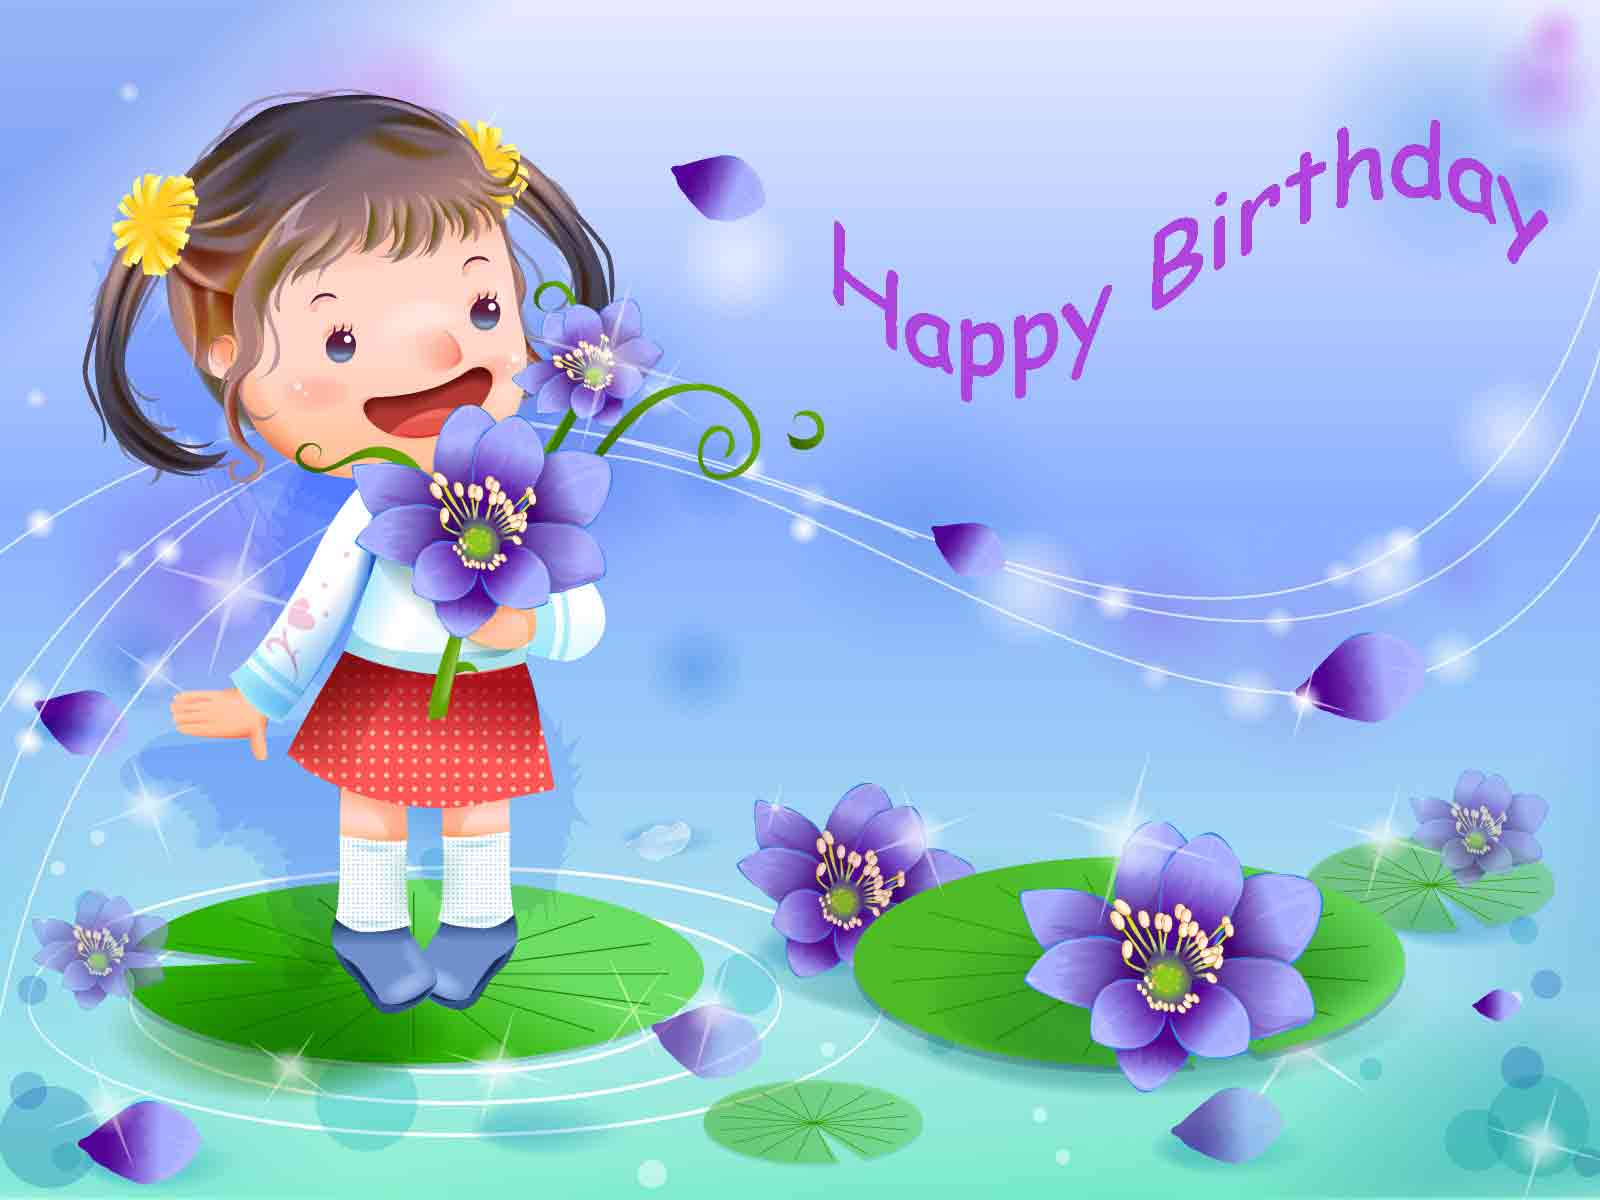 Exceptional Wallpapers For U003e Cute Birthday Wishes Wallpapers